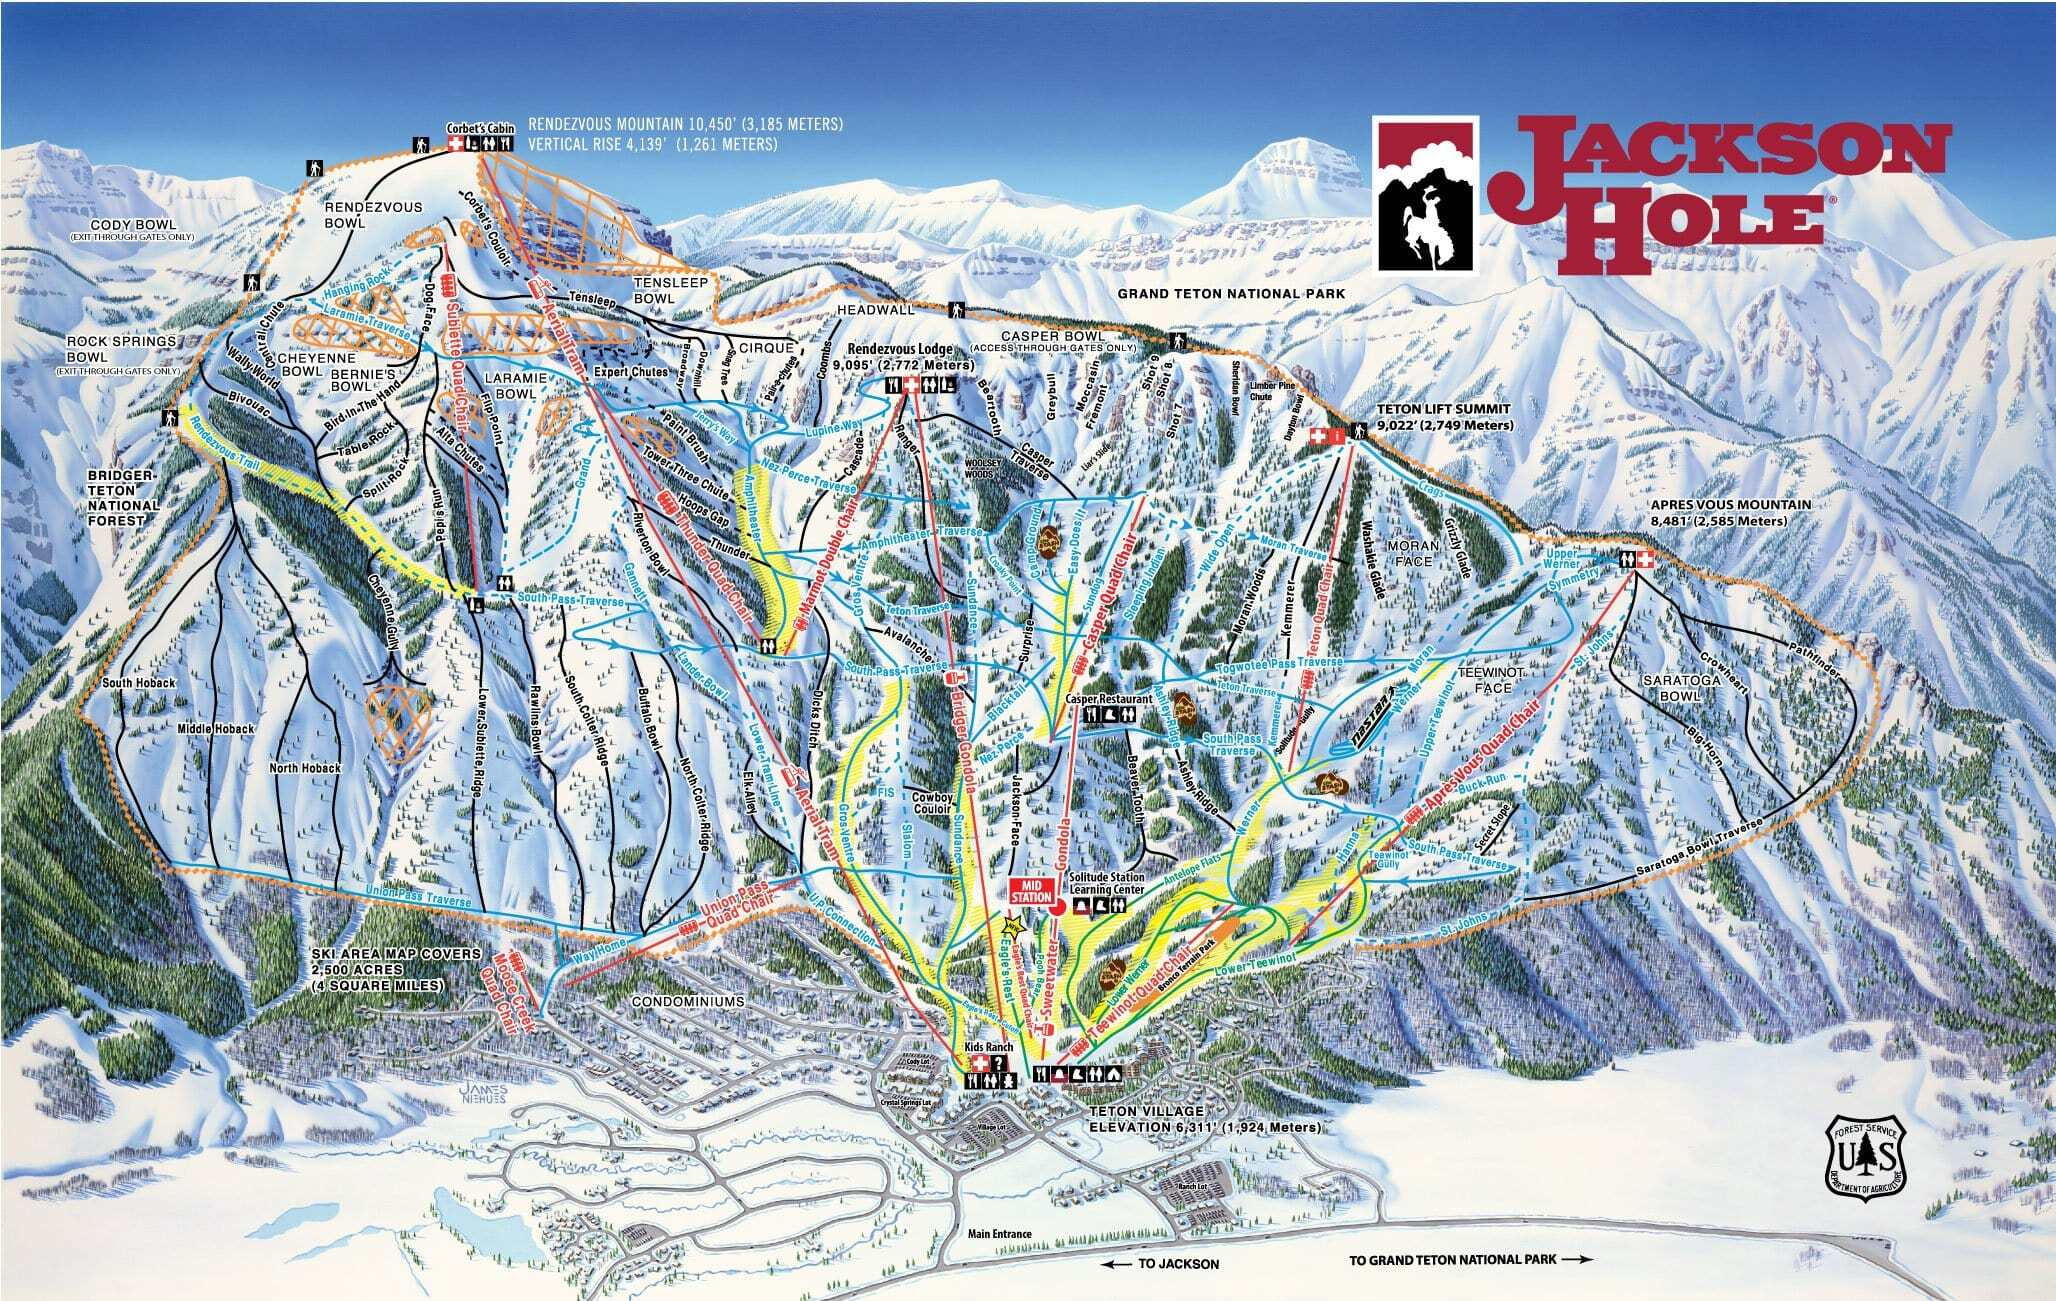 Jackson Hole Piste / Trail Map